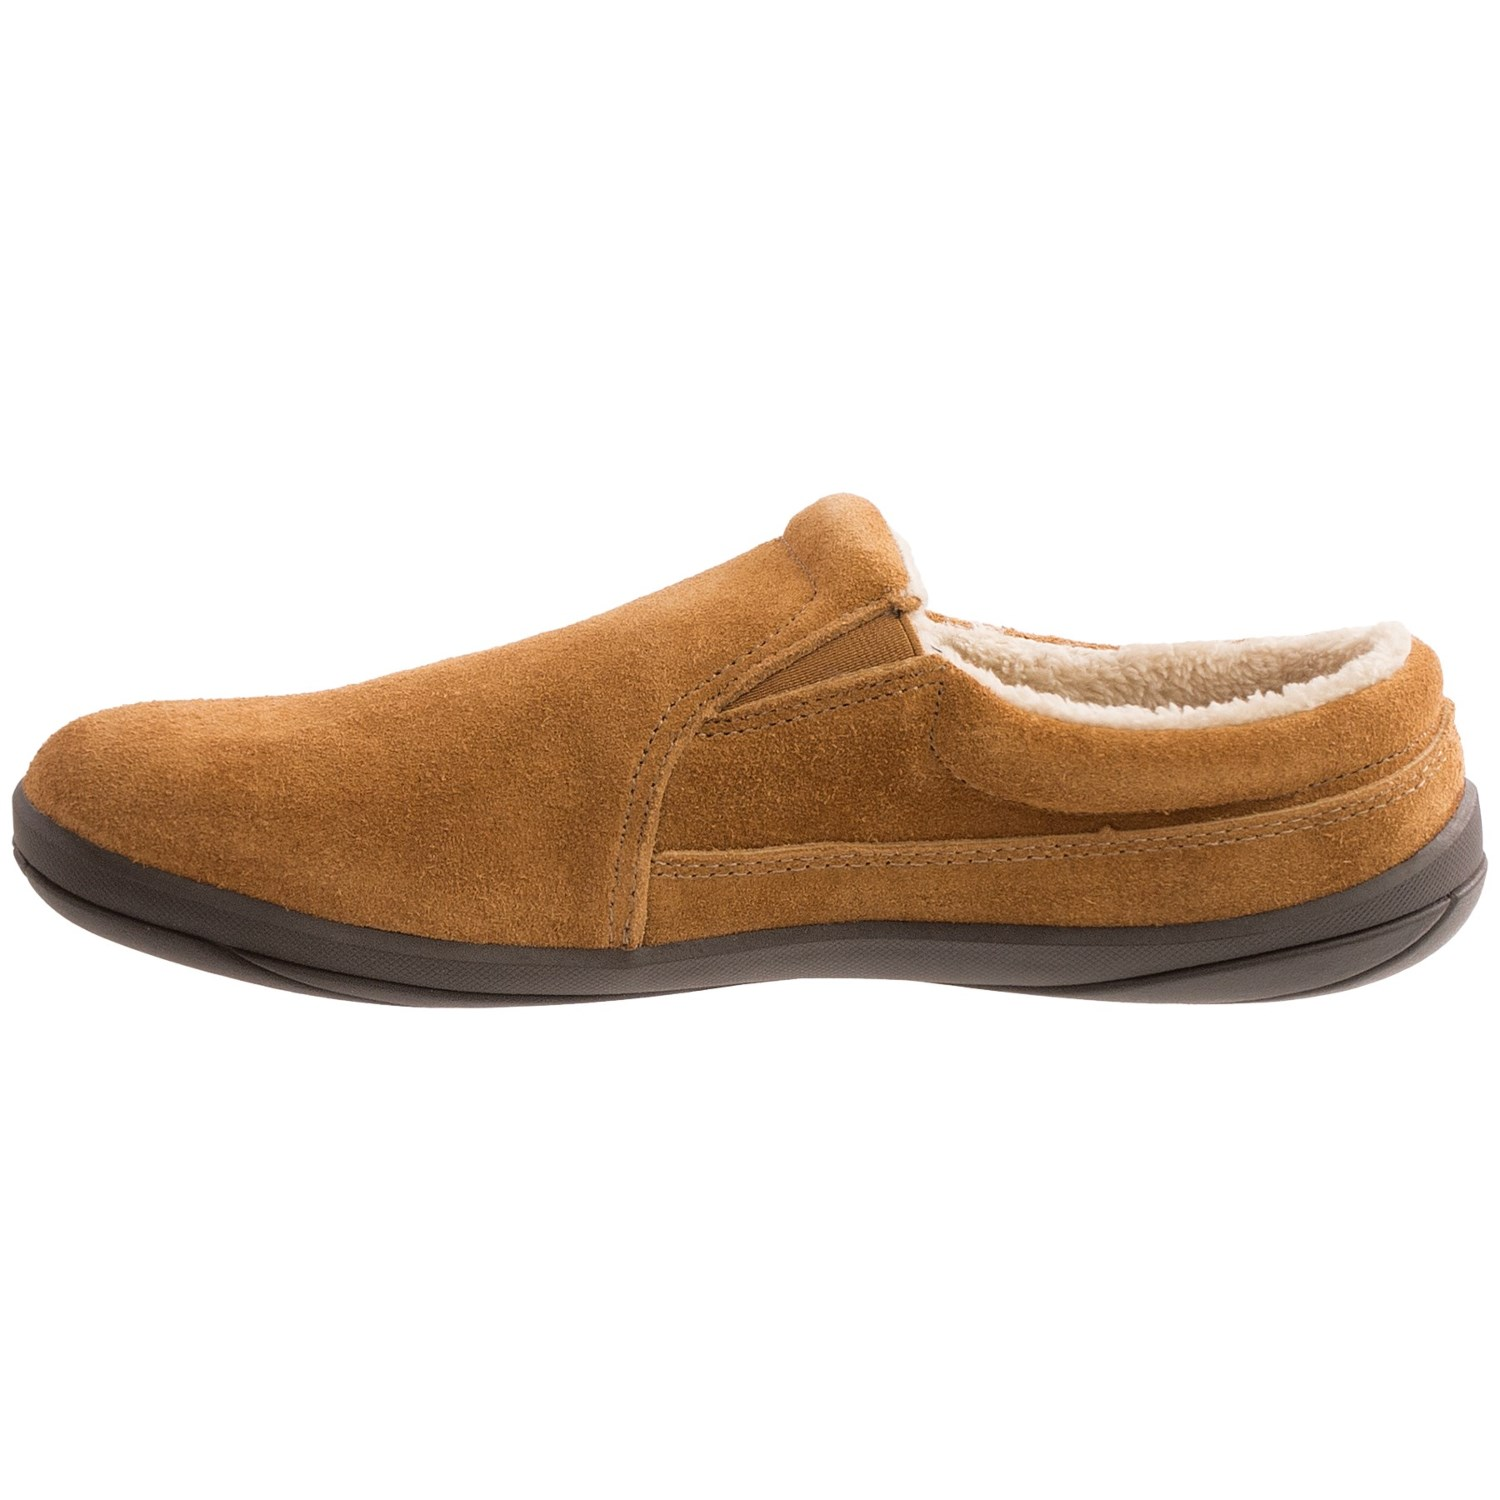 Hush Puppies Lombardy Suede Slippers (For Men) - Save 25%